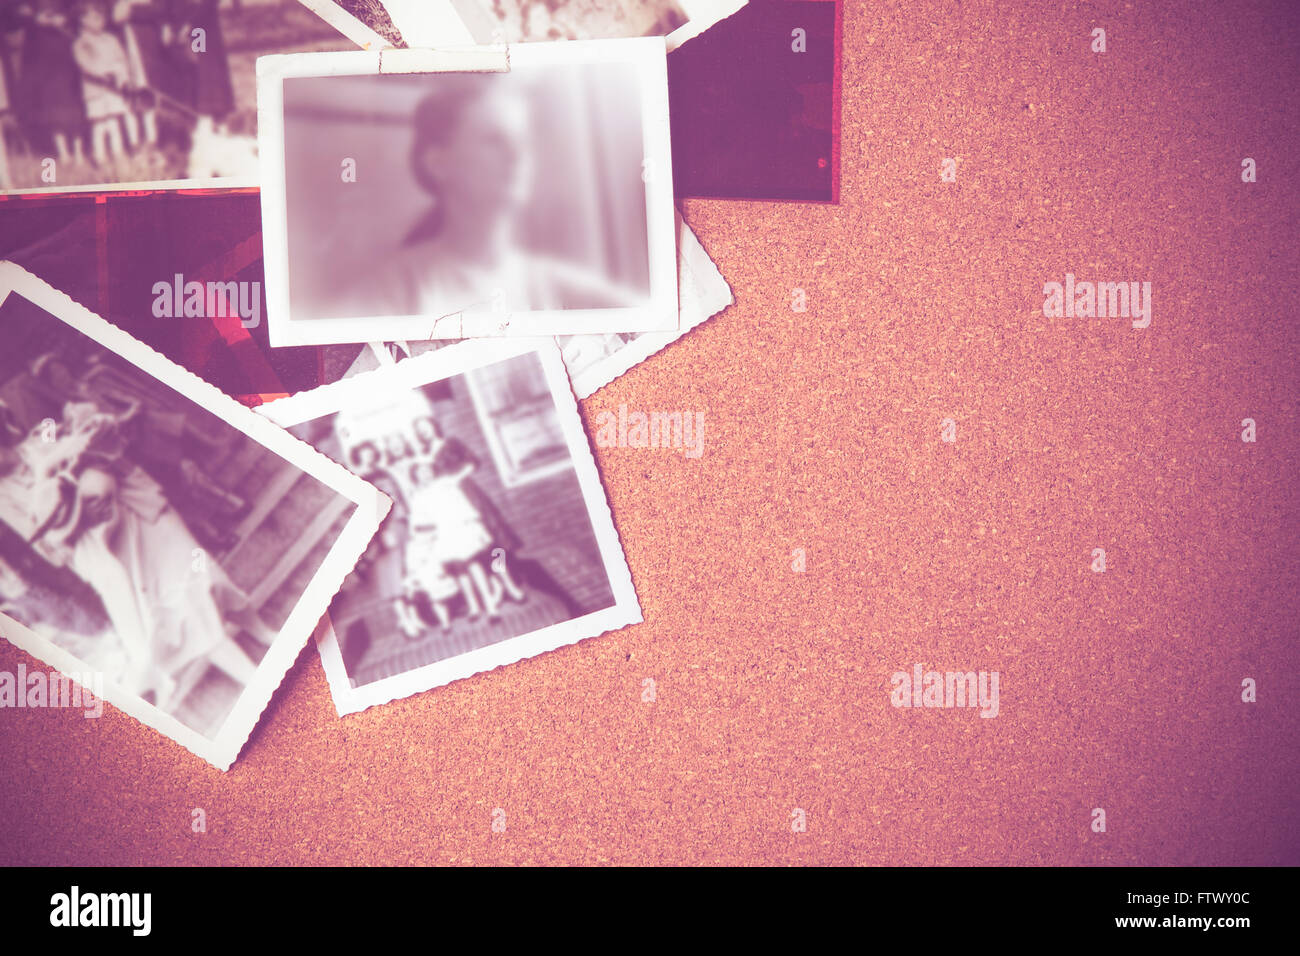 Vintage image of family photographs on corkboard - Stock Image